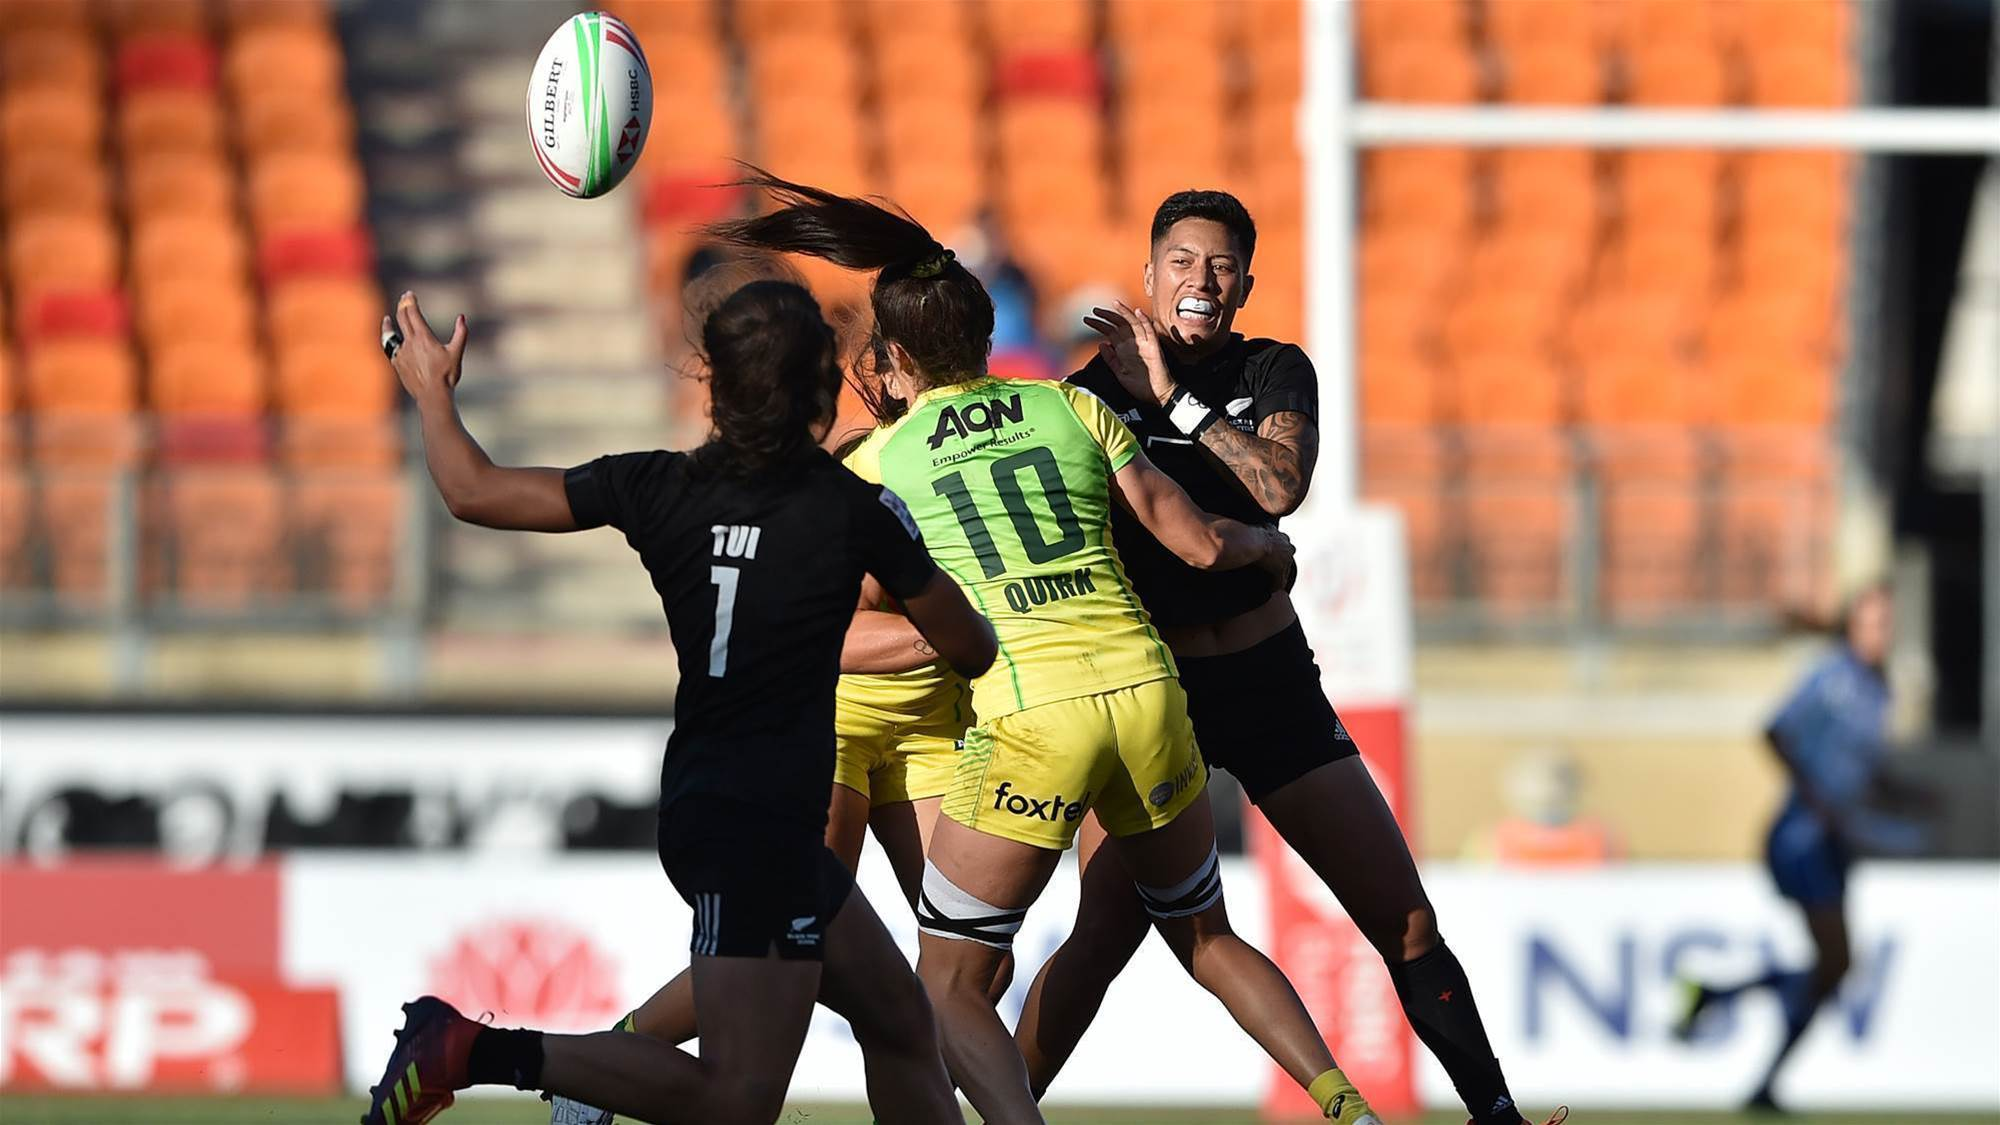 Rugby 7s World Series expanded